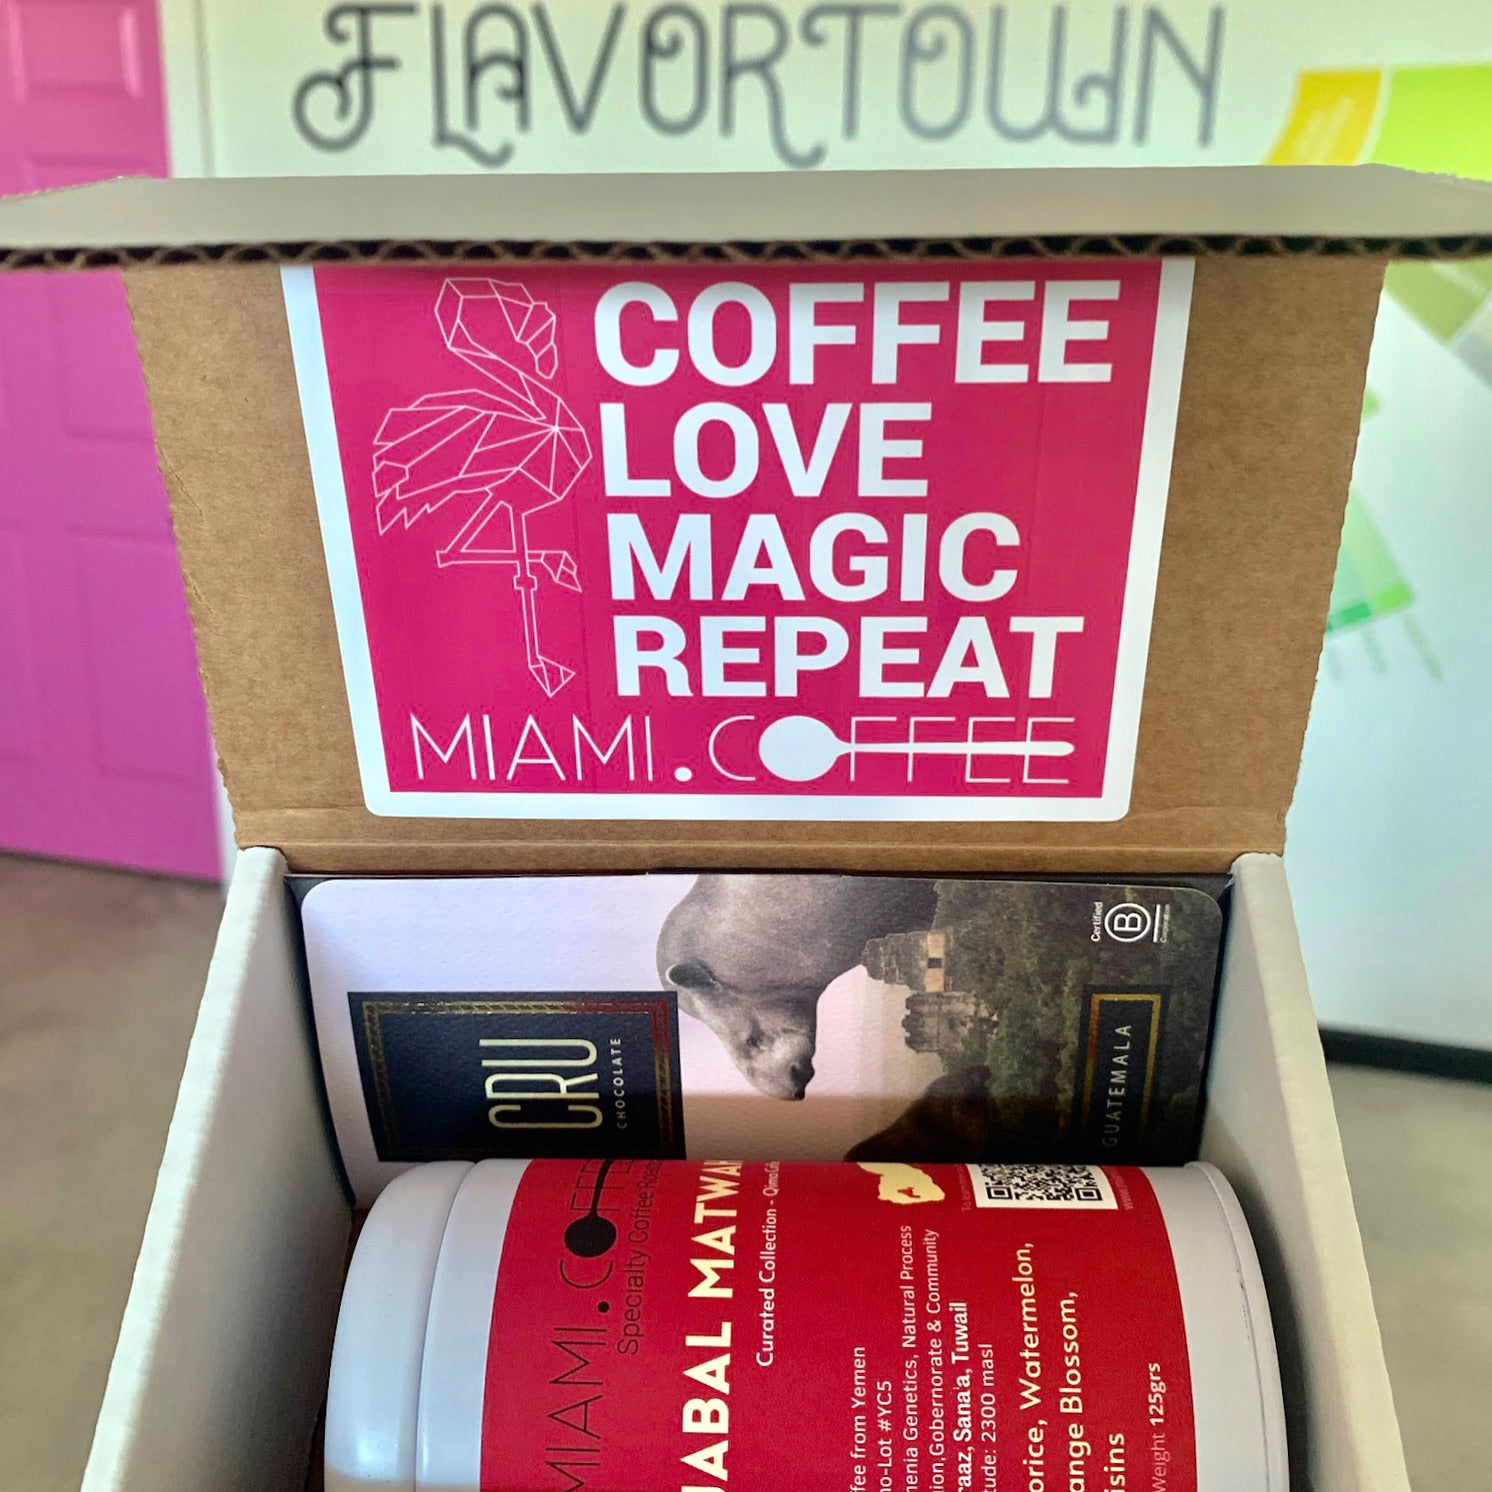 Box containing 125g can of Jabal Matwah Yemenia coffee from Miami.Coffee and single origin specialty chocolate bar. #CoffeeLoveMagicRepeat